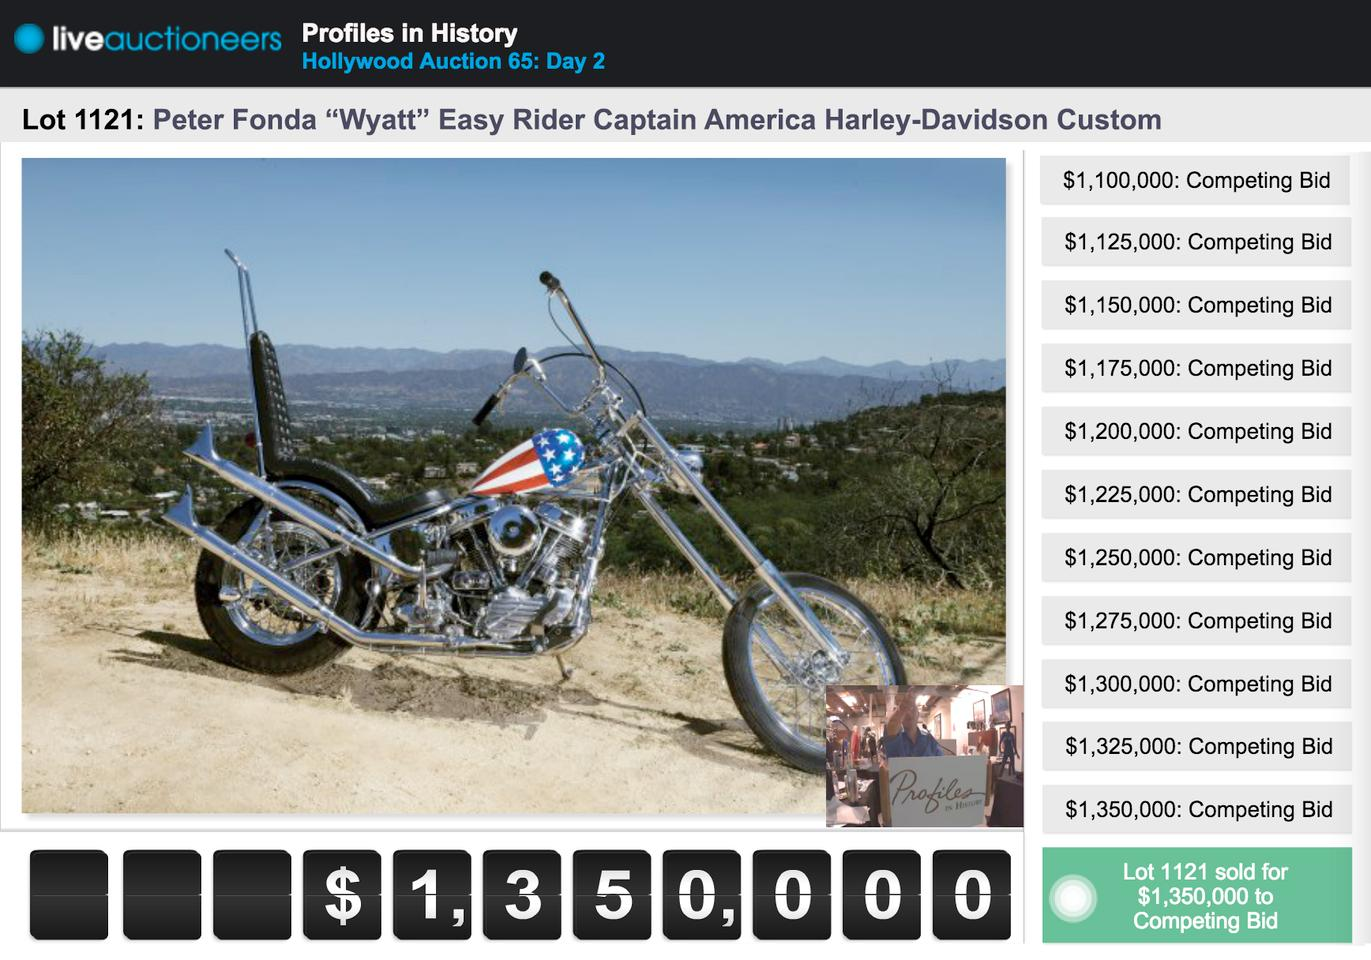 The liveauctioneers online bidding module from the Profiles in History auction of the other Captain America bike on 19 October 2014 shows the highest bids ever lodged for a motorcycle at auction. The final hammer price of $1,350,000 was effectively $1.62 million including buyers premium. The sale reportedly fell through after auction and a lesser amount is believed to have been paid.